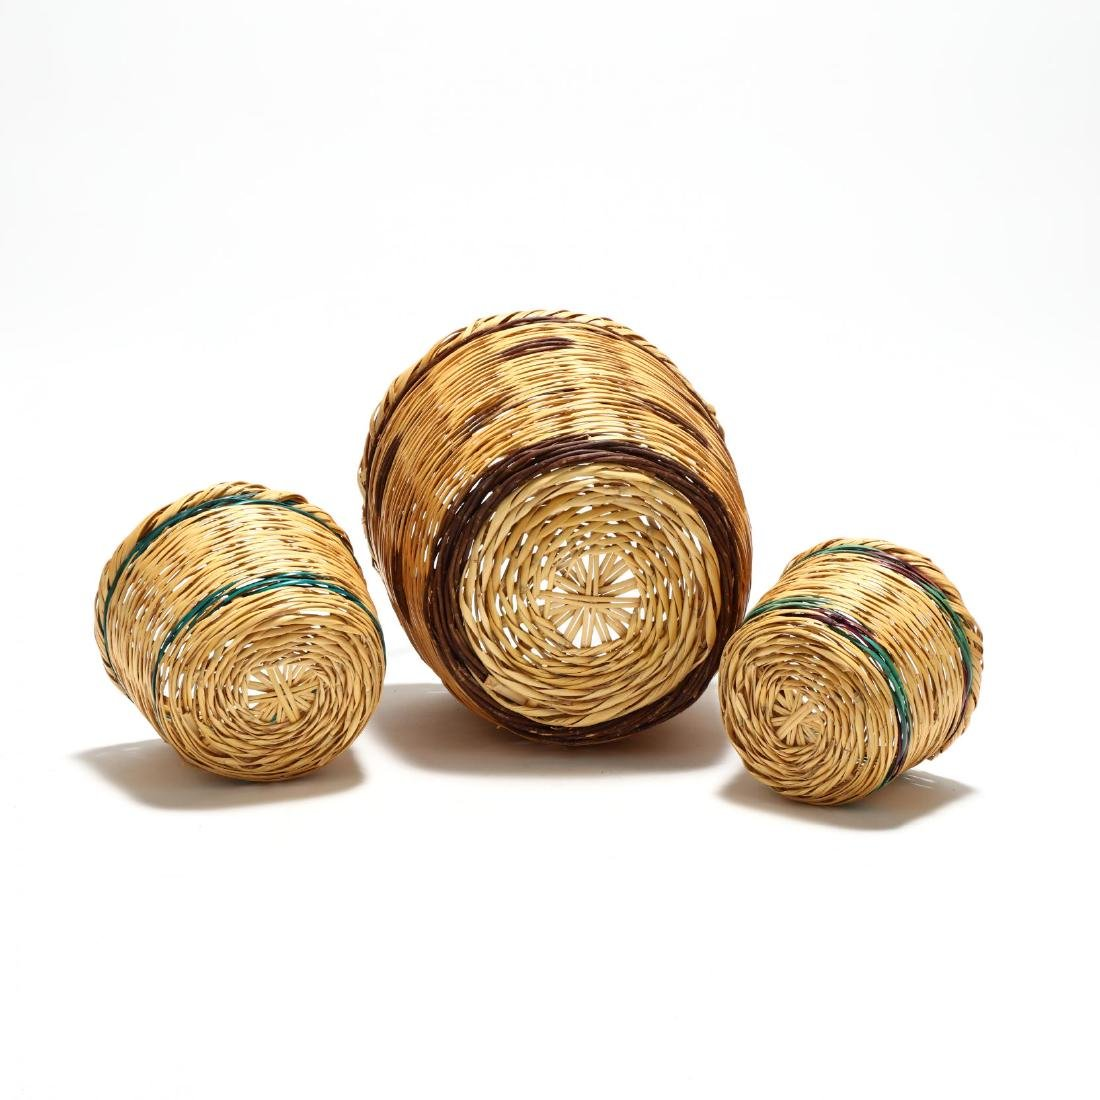 Assembled Set of Three Graduated Reed Baskets - 4